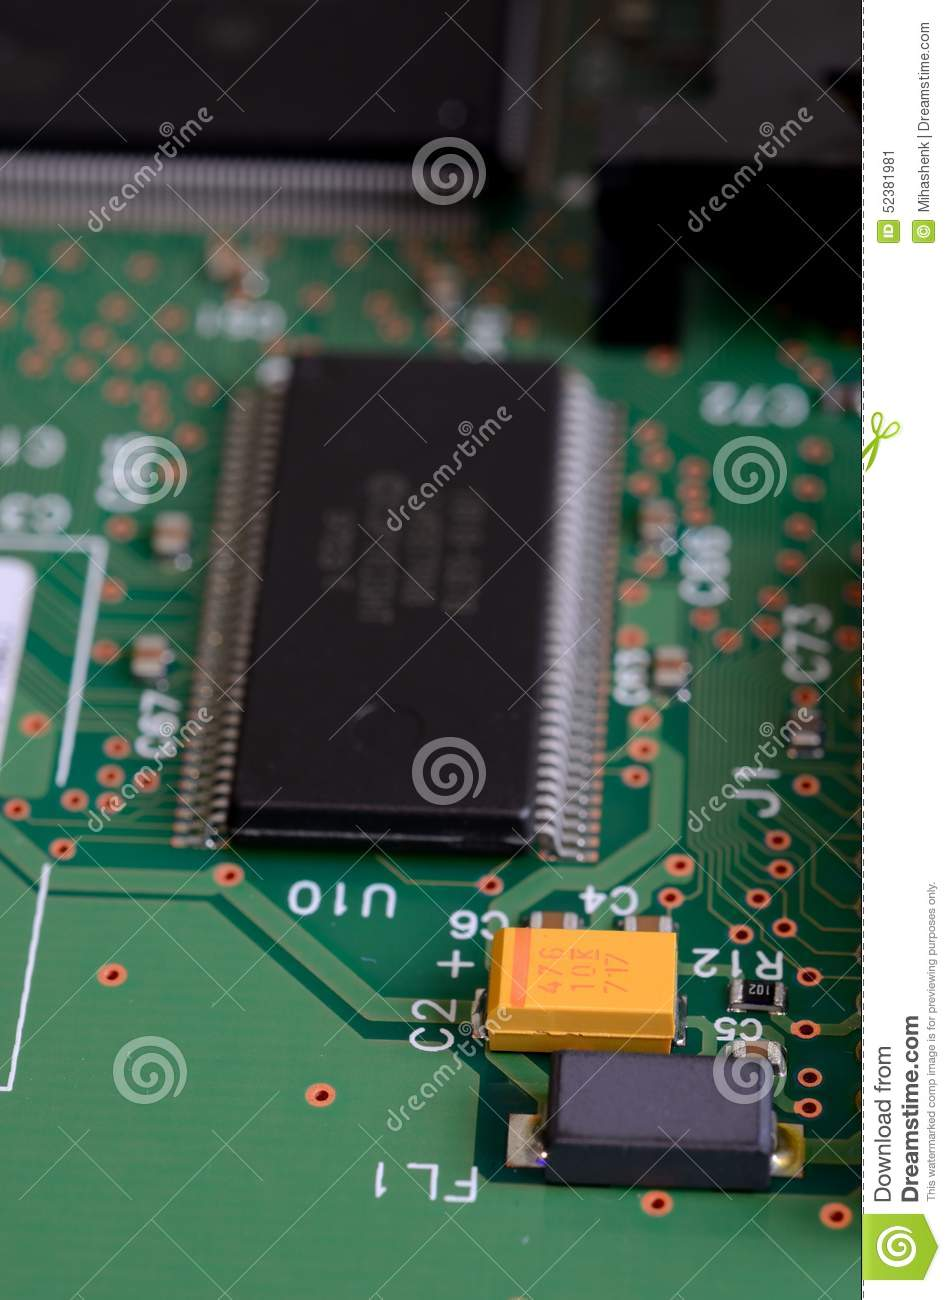 Surface Mount Components On A Green Circuit Board